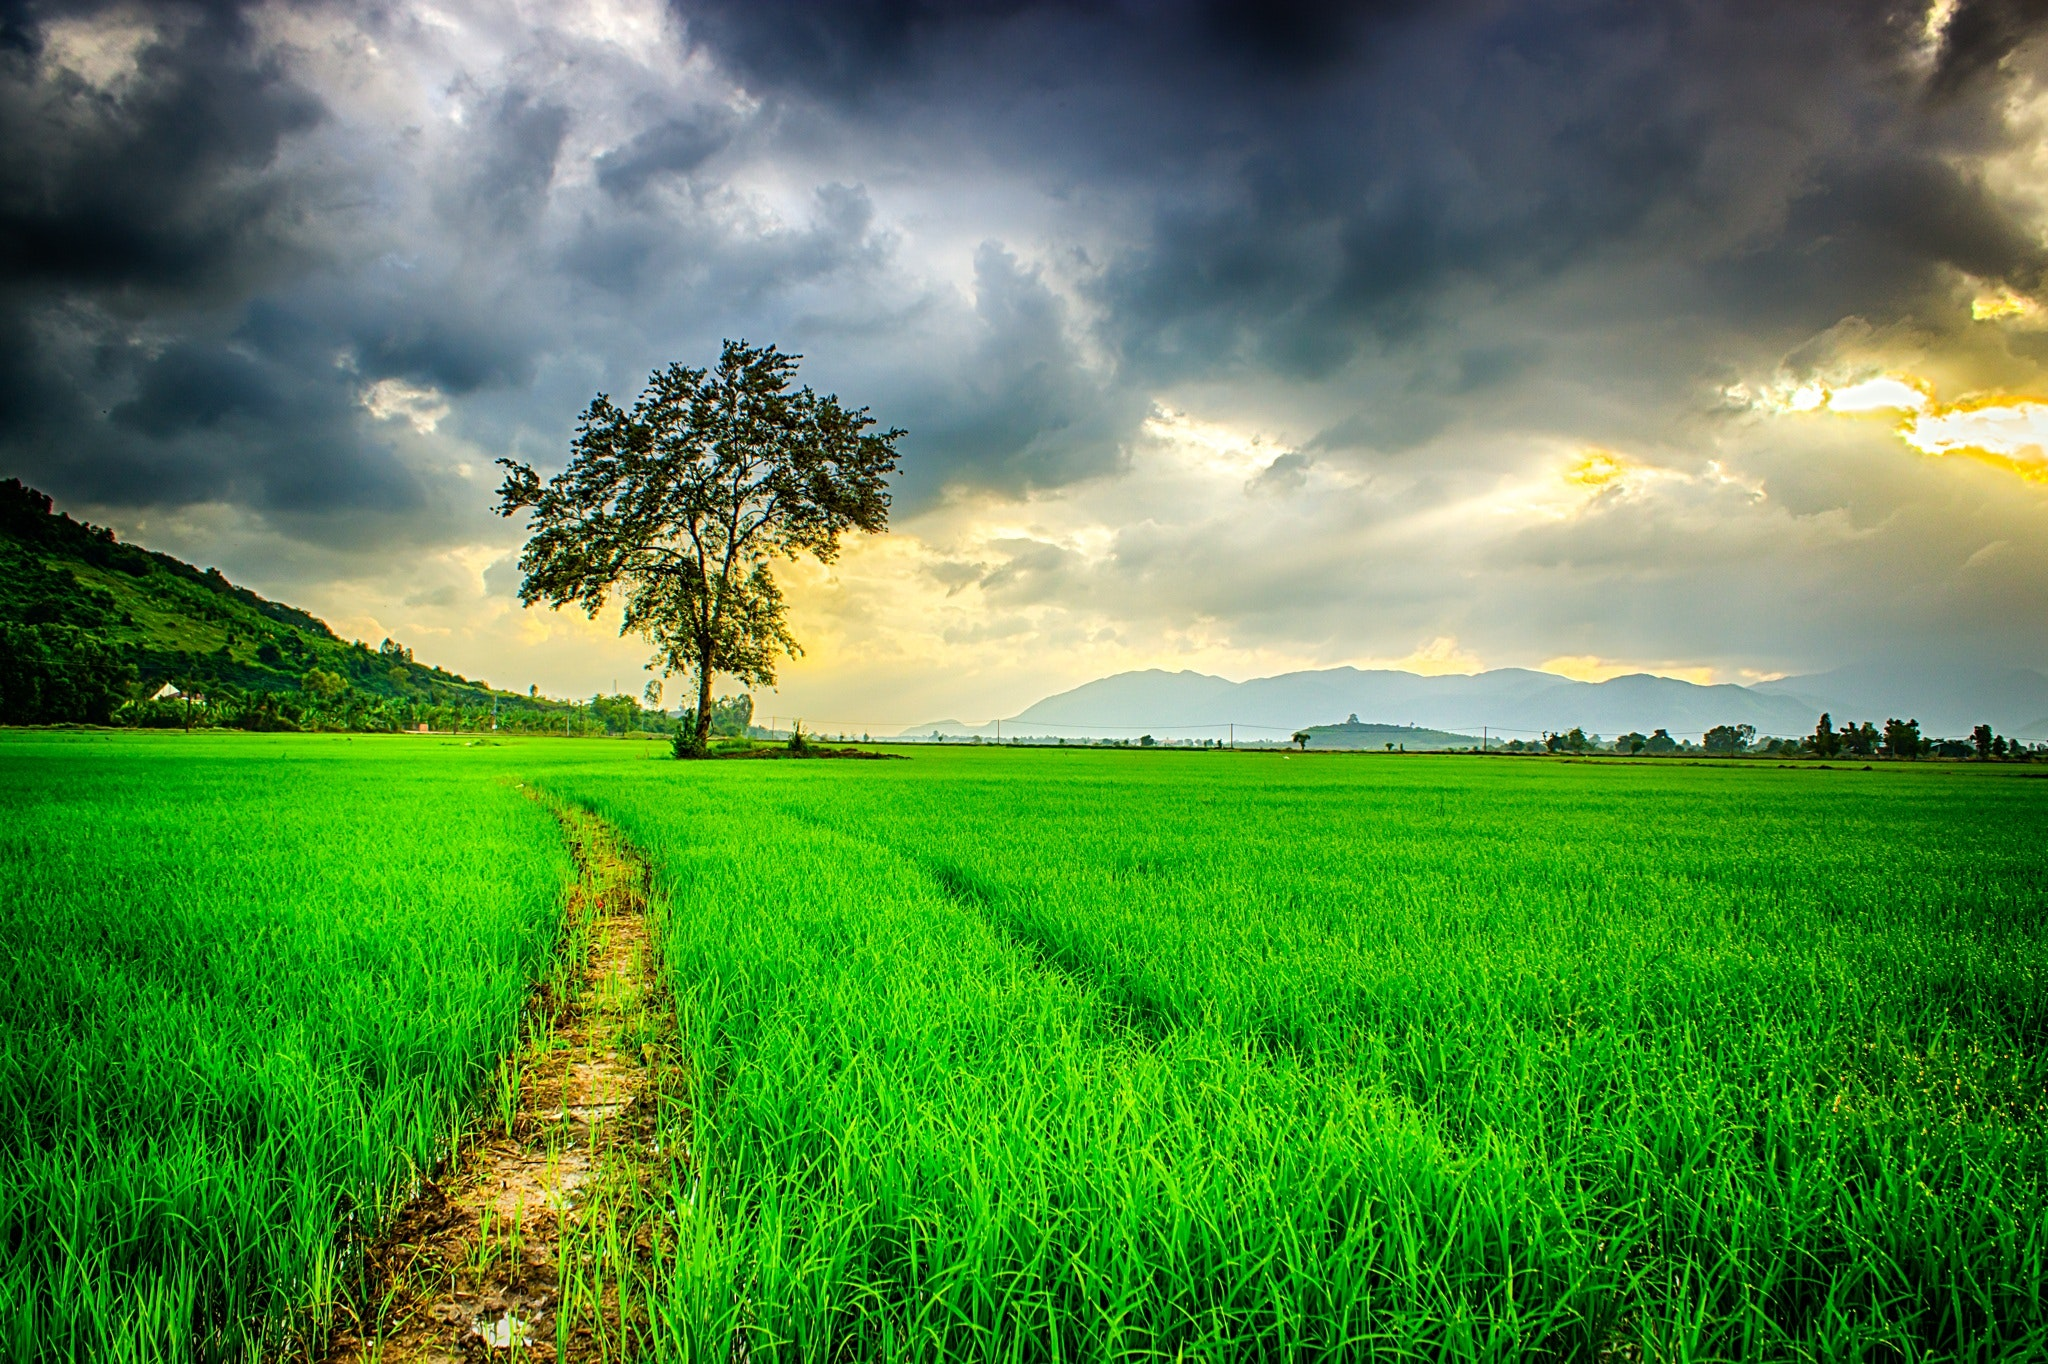 1000+ Beautiful Natural Photos Pexels · Free Stock Photos